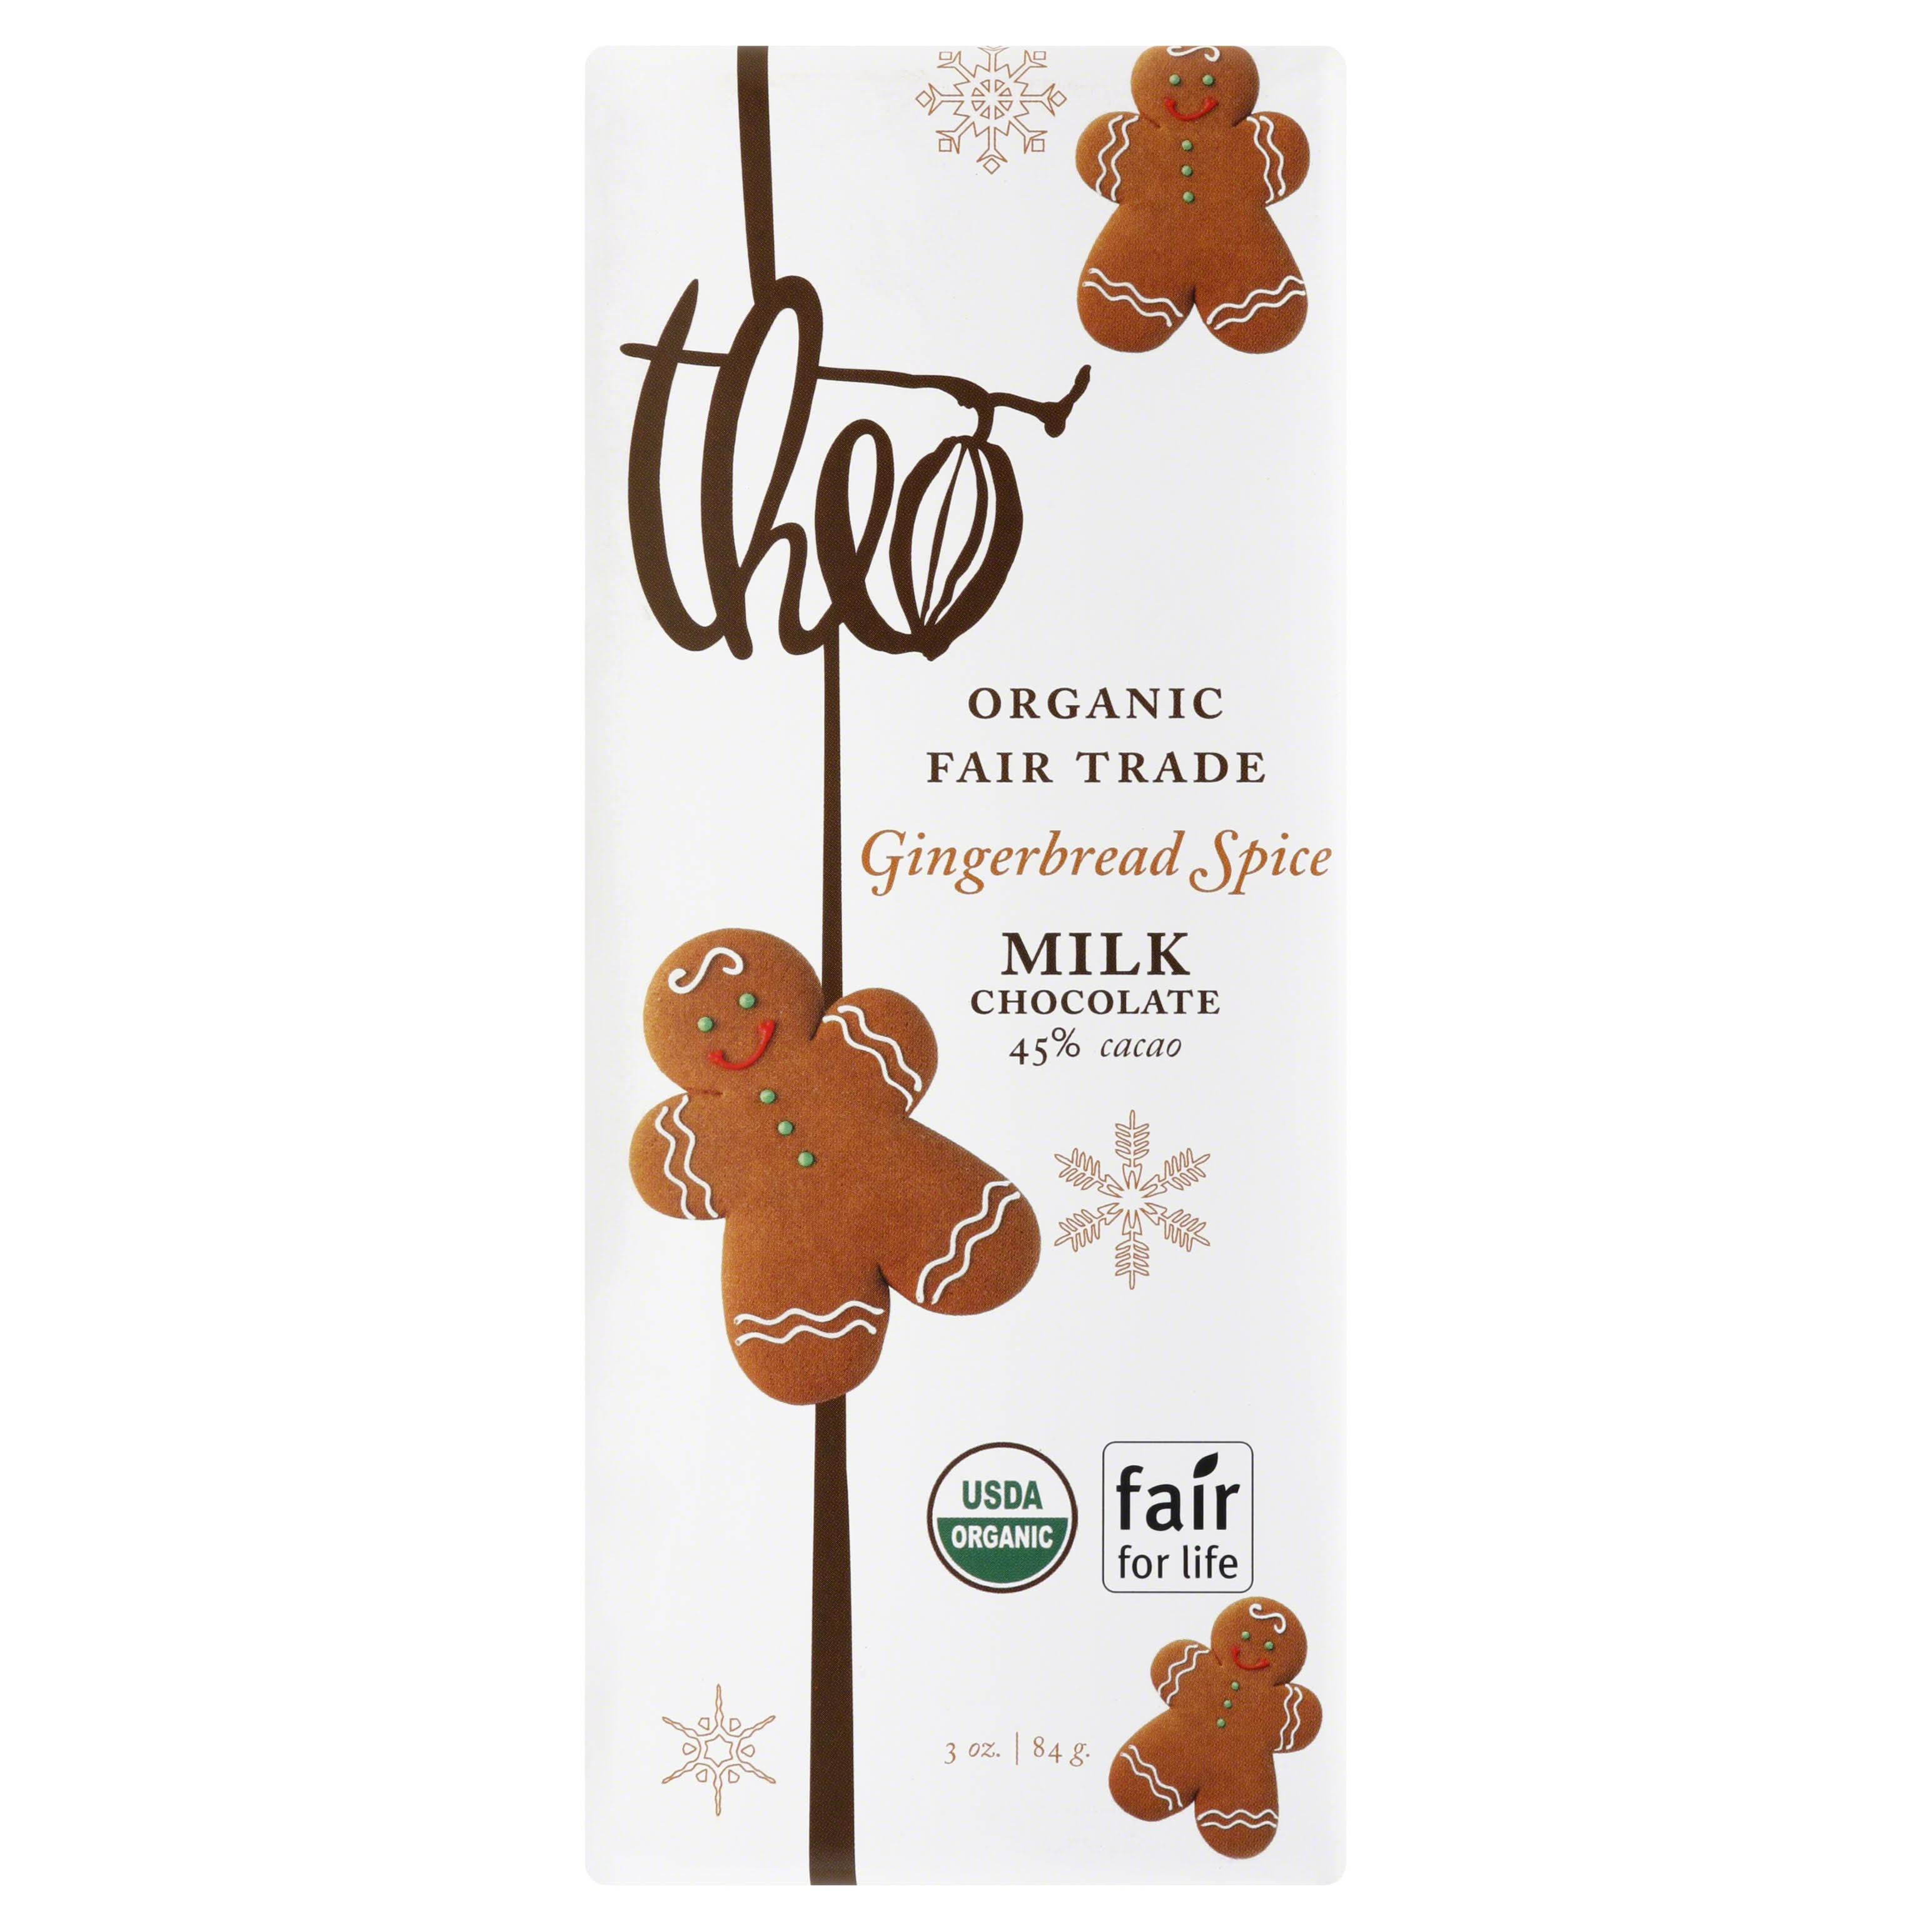 Theo Milk Chocolate Bar - Gingerbread Spice, 85g